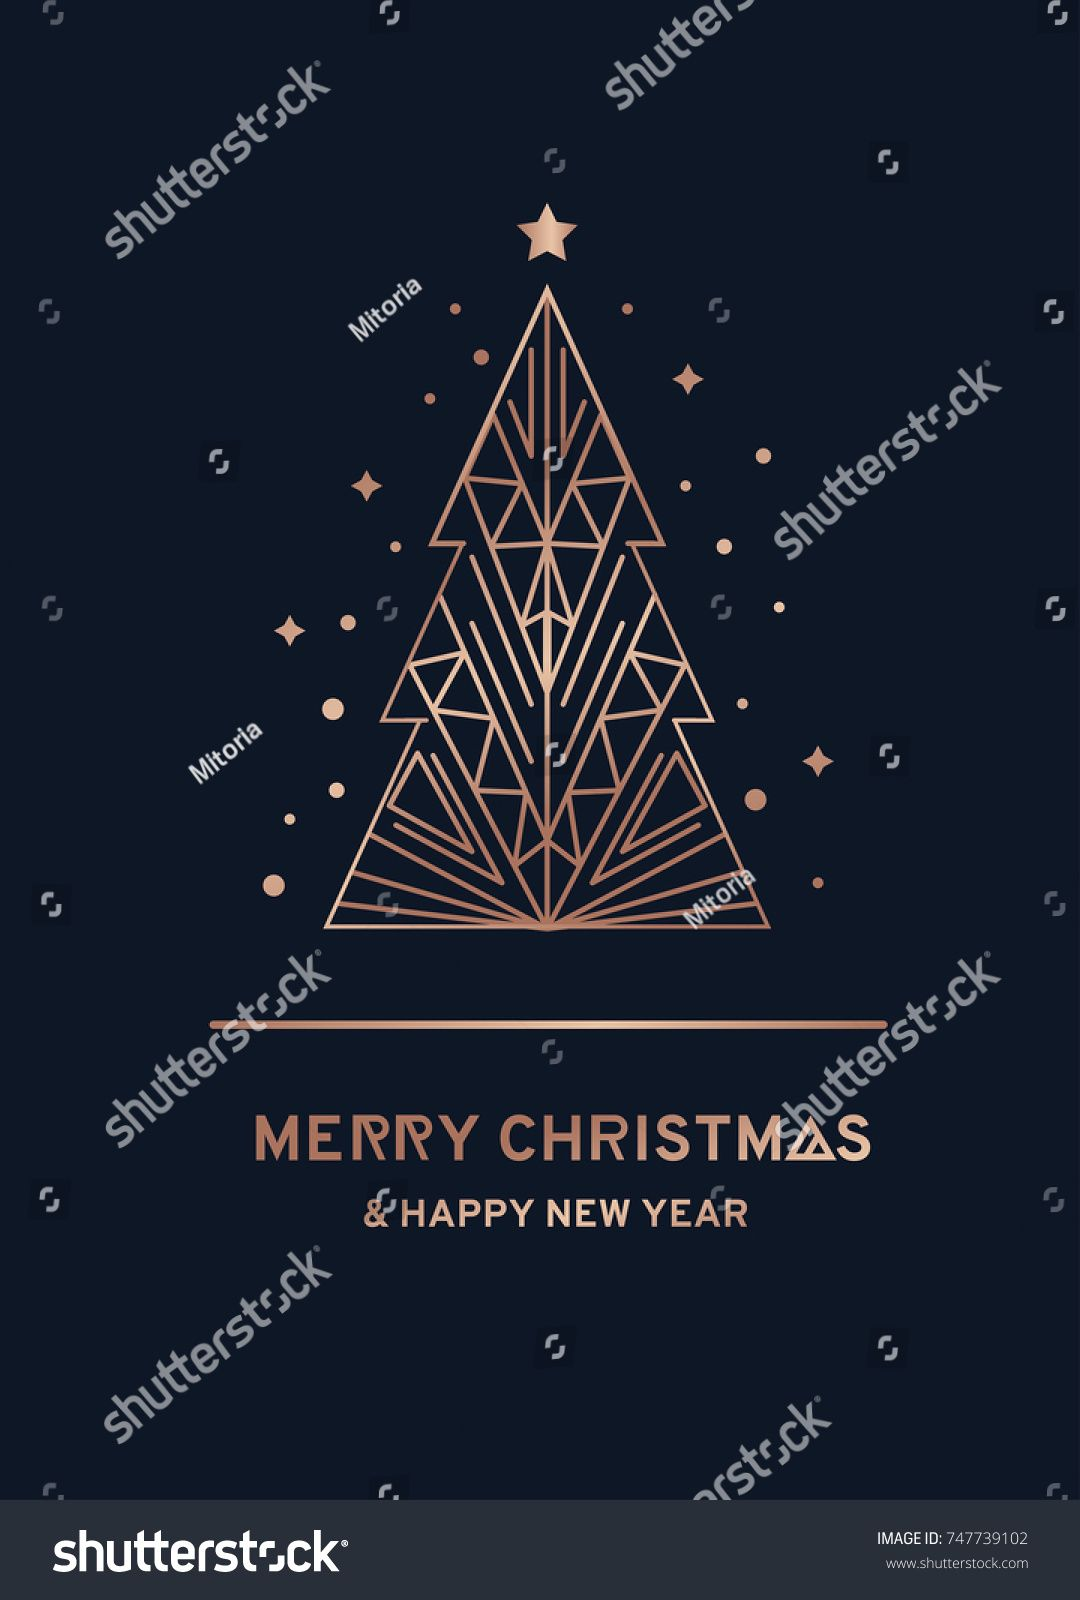 Abstract Geometric Christmas Shapes Rose Gold